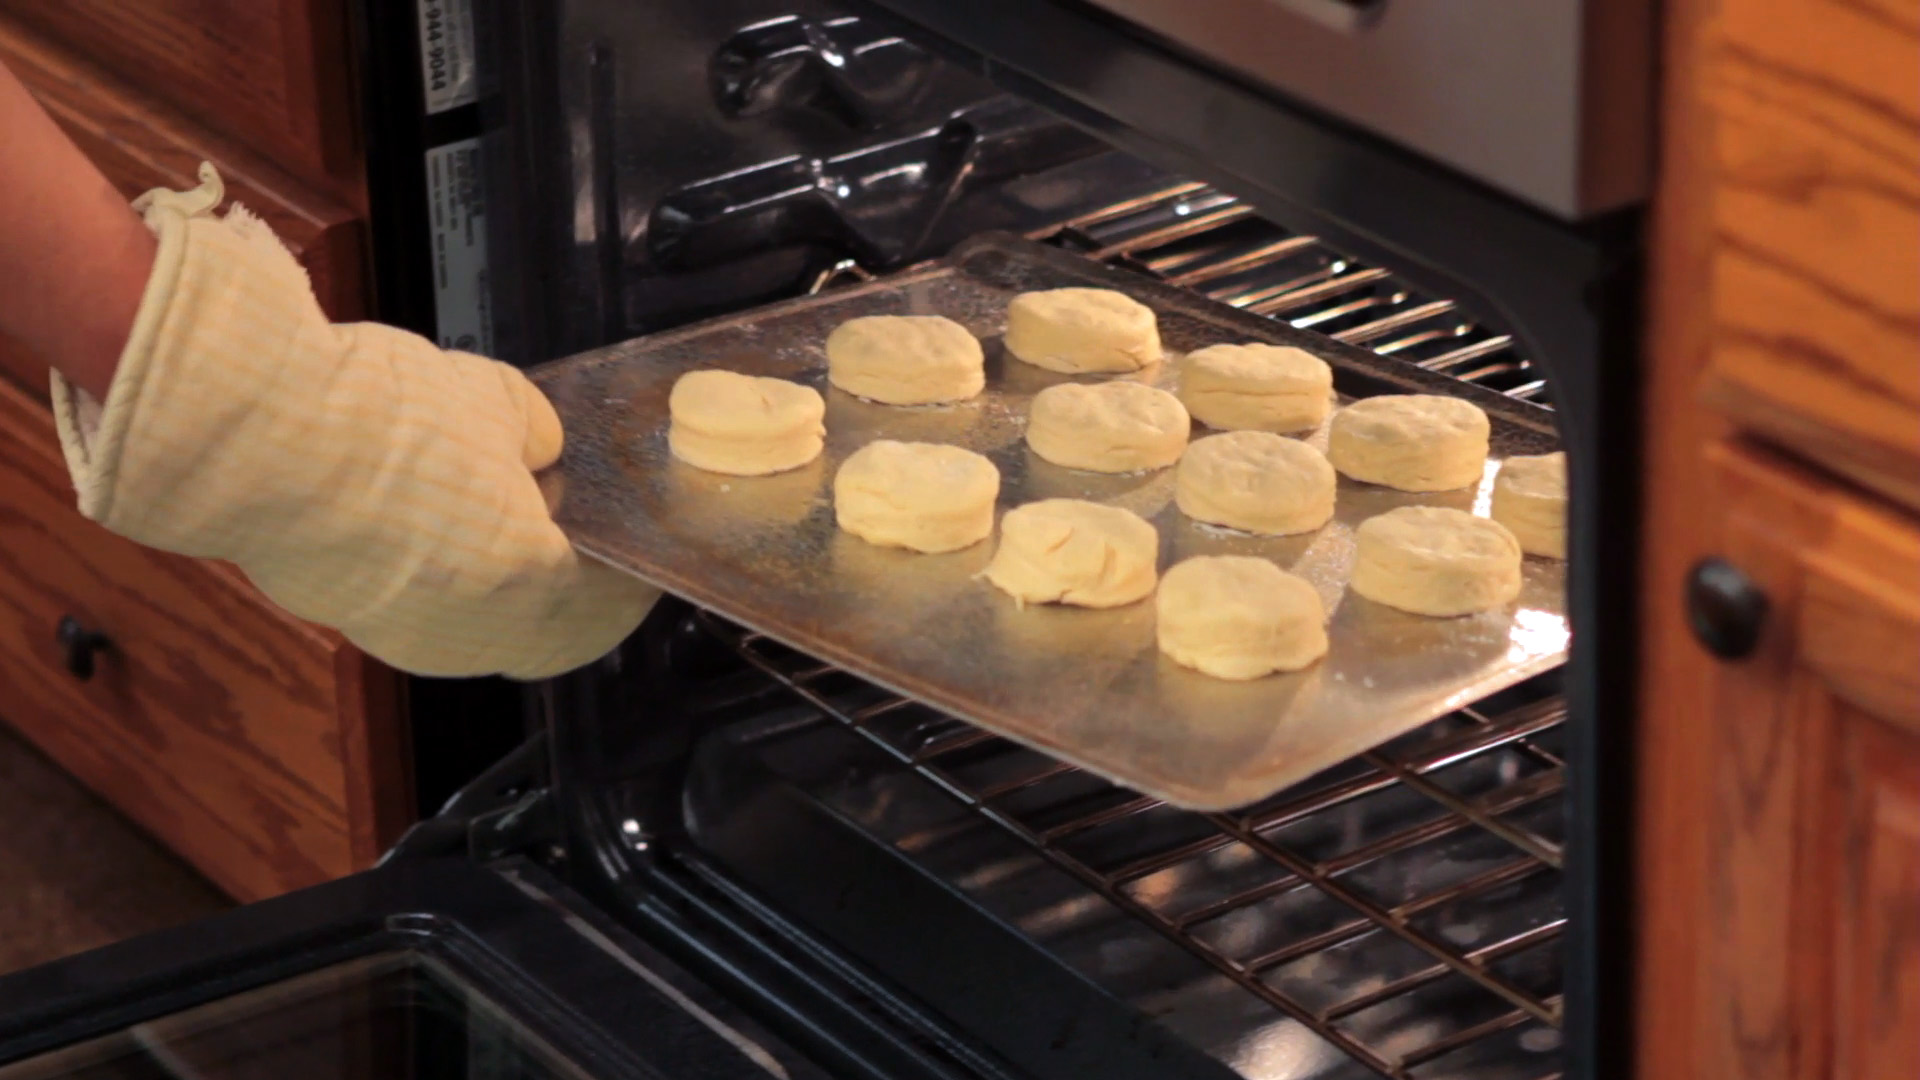 Biscuits going in to the oven.